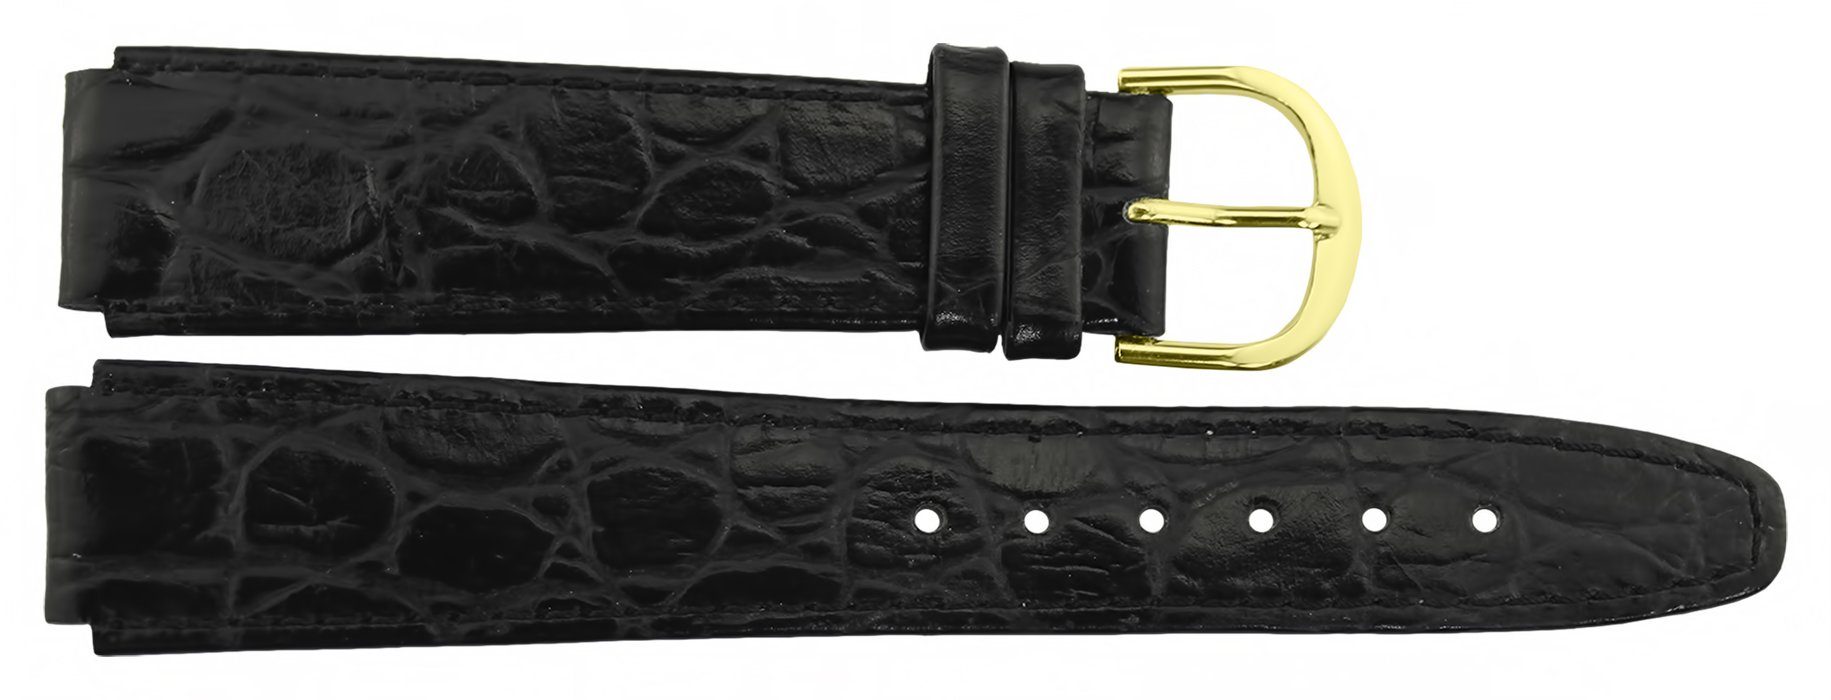 Citime Black Leather Band Replacement, Alligator Pattern, Pin Clasp, 16mm Strap _ B16BlkAli50G